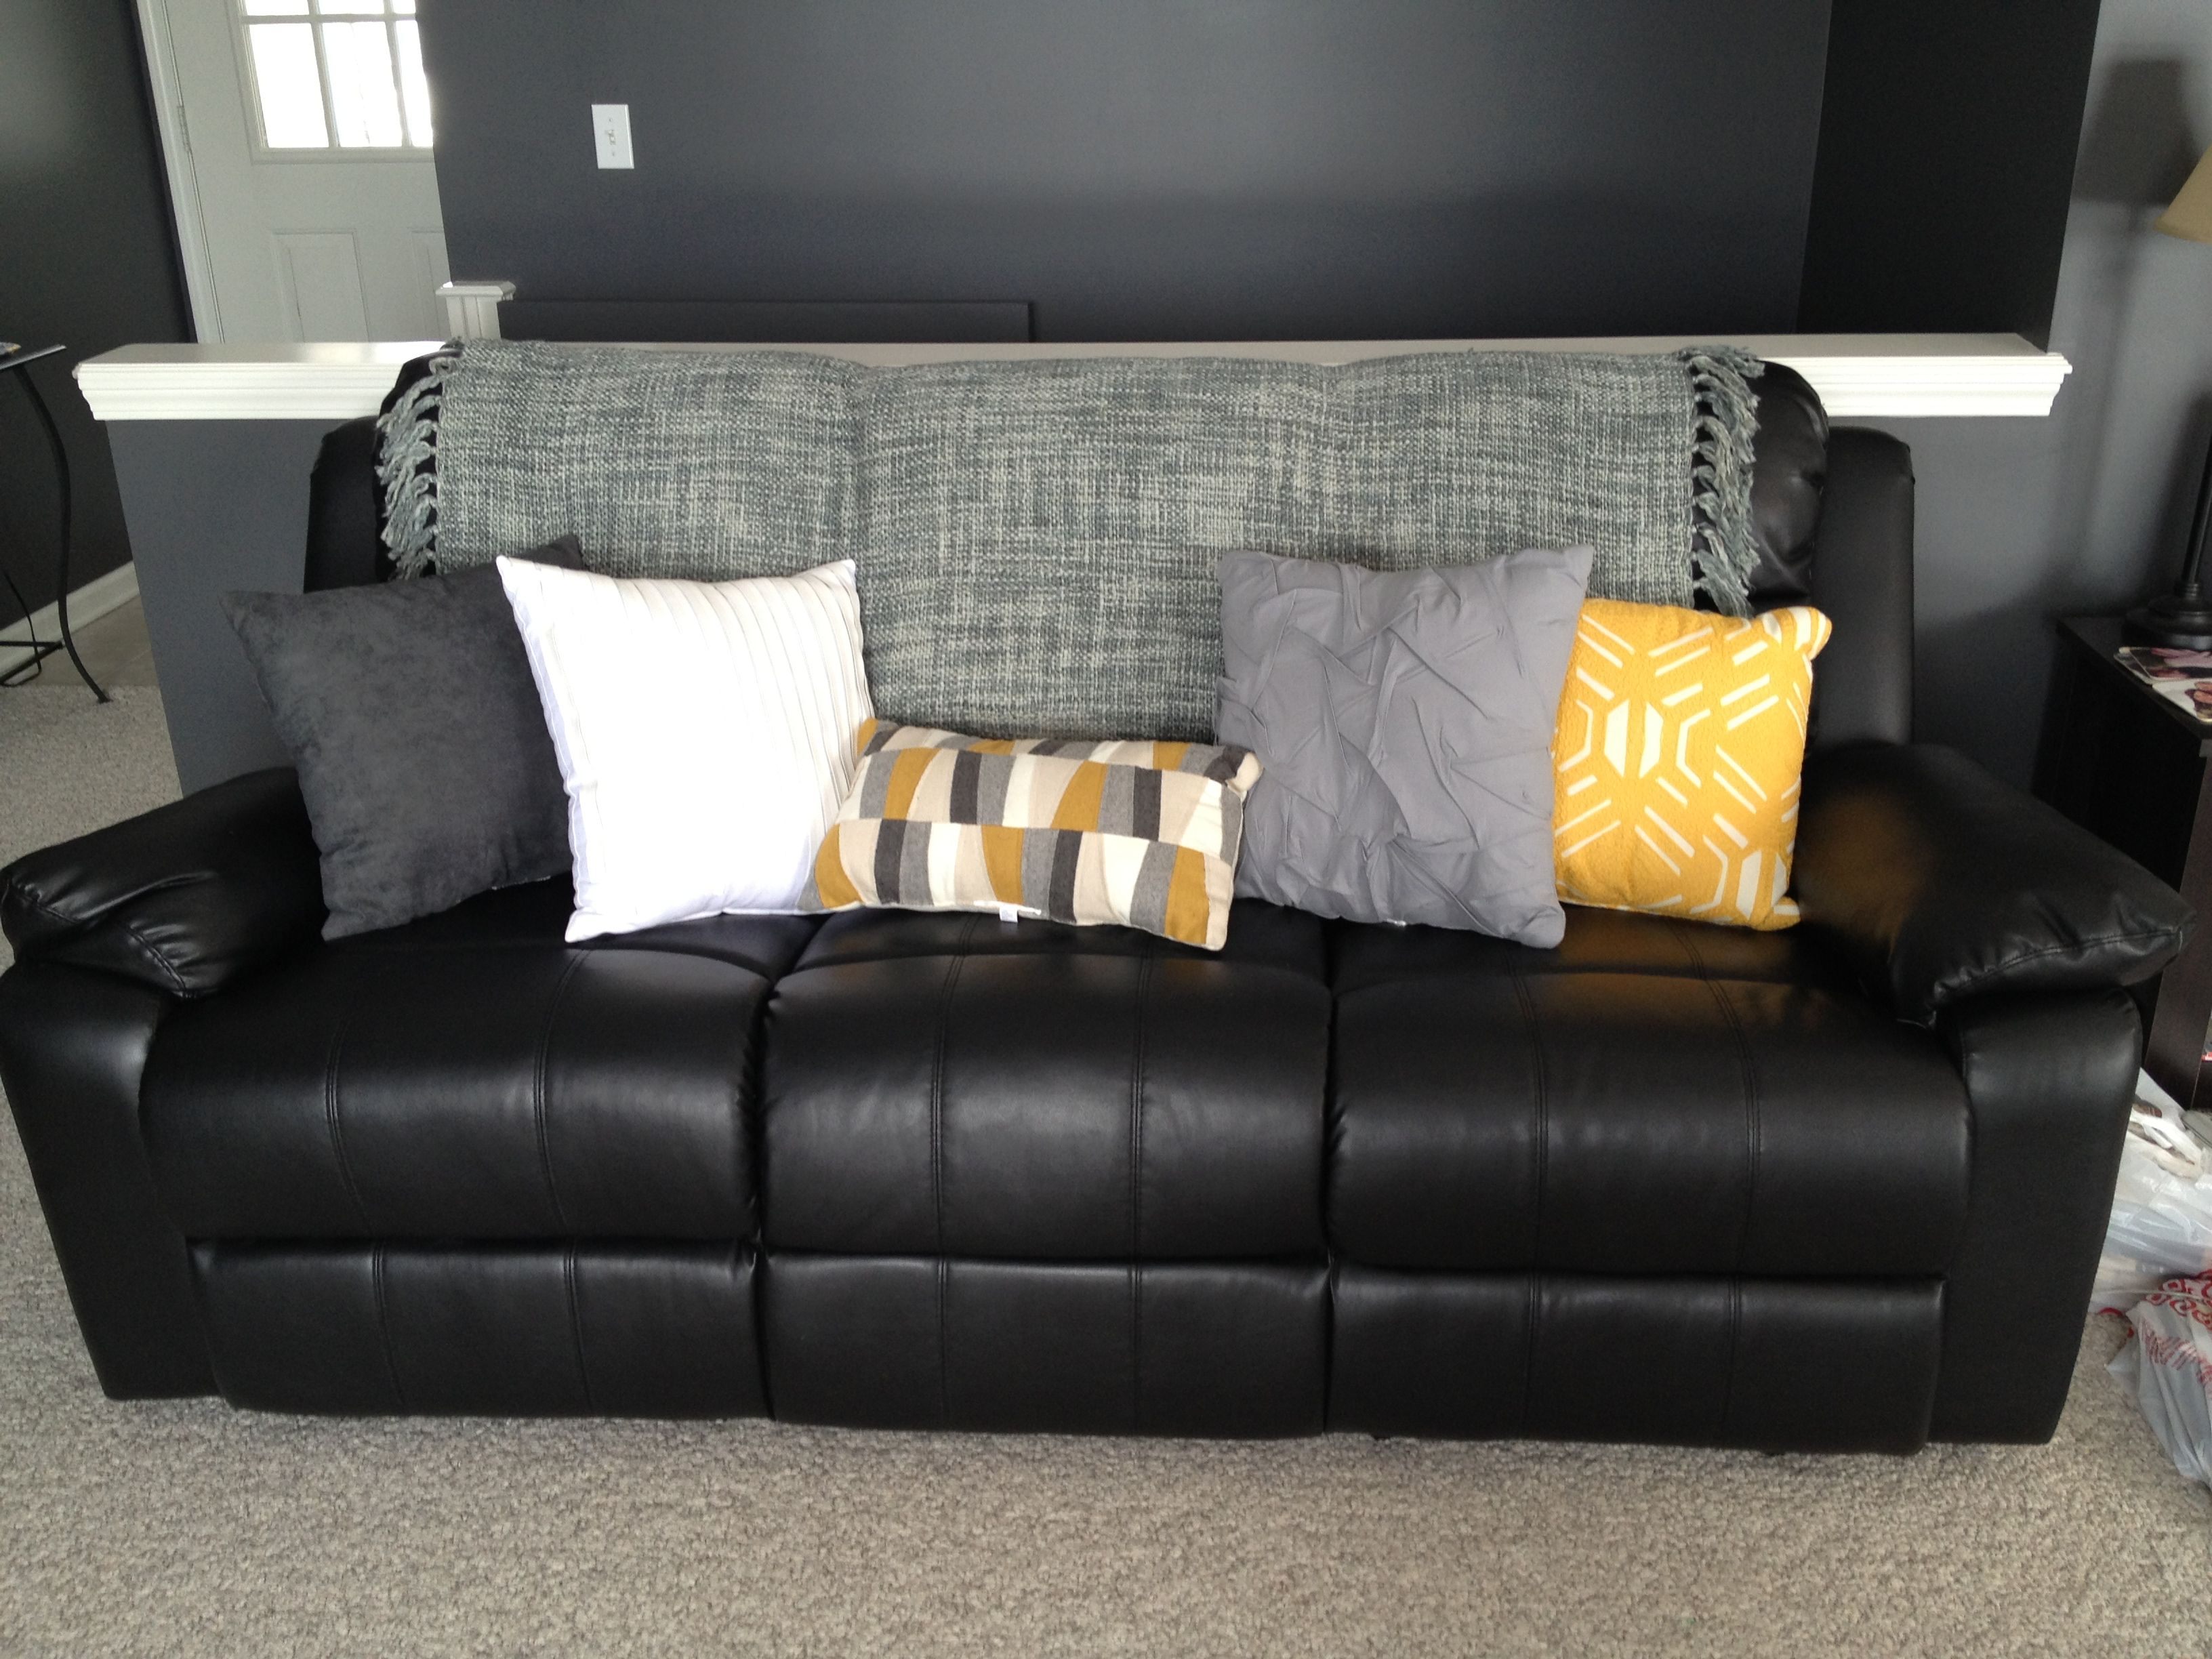 lighten up a black leather couch with